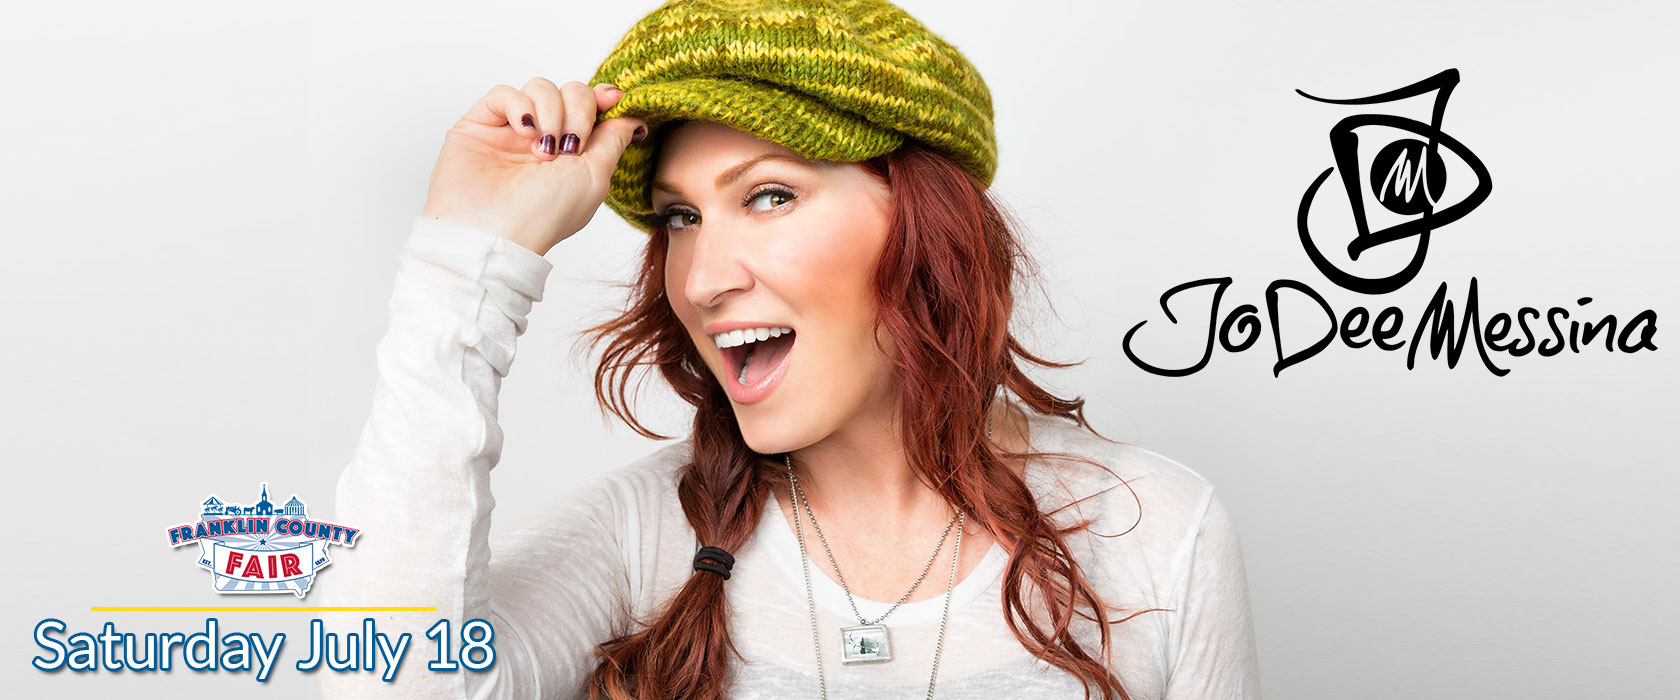 Jo Dee Messina Slide Image